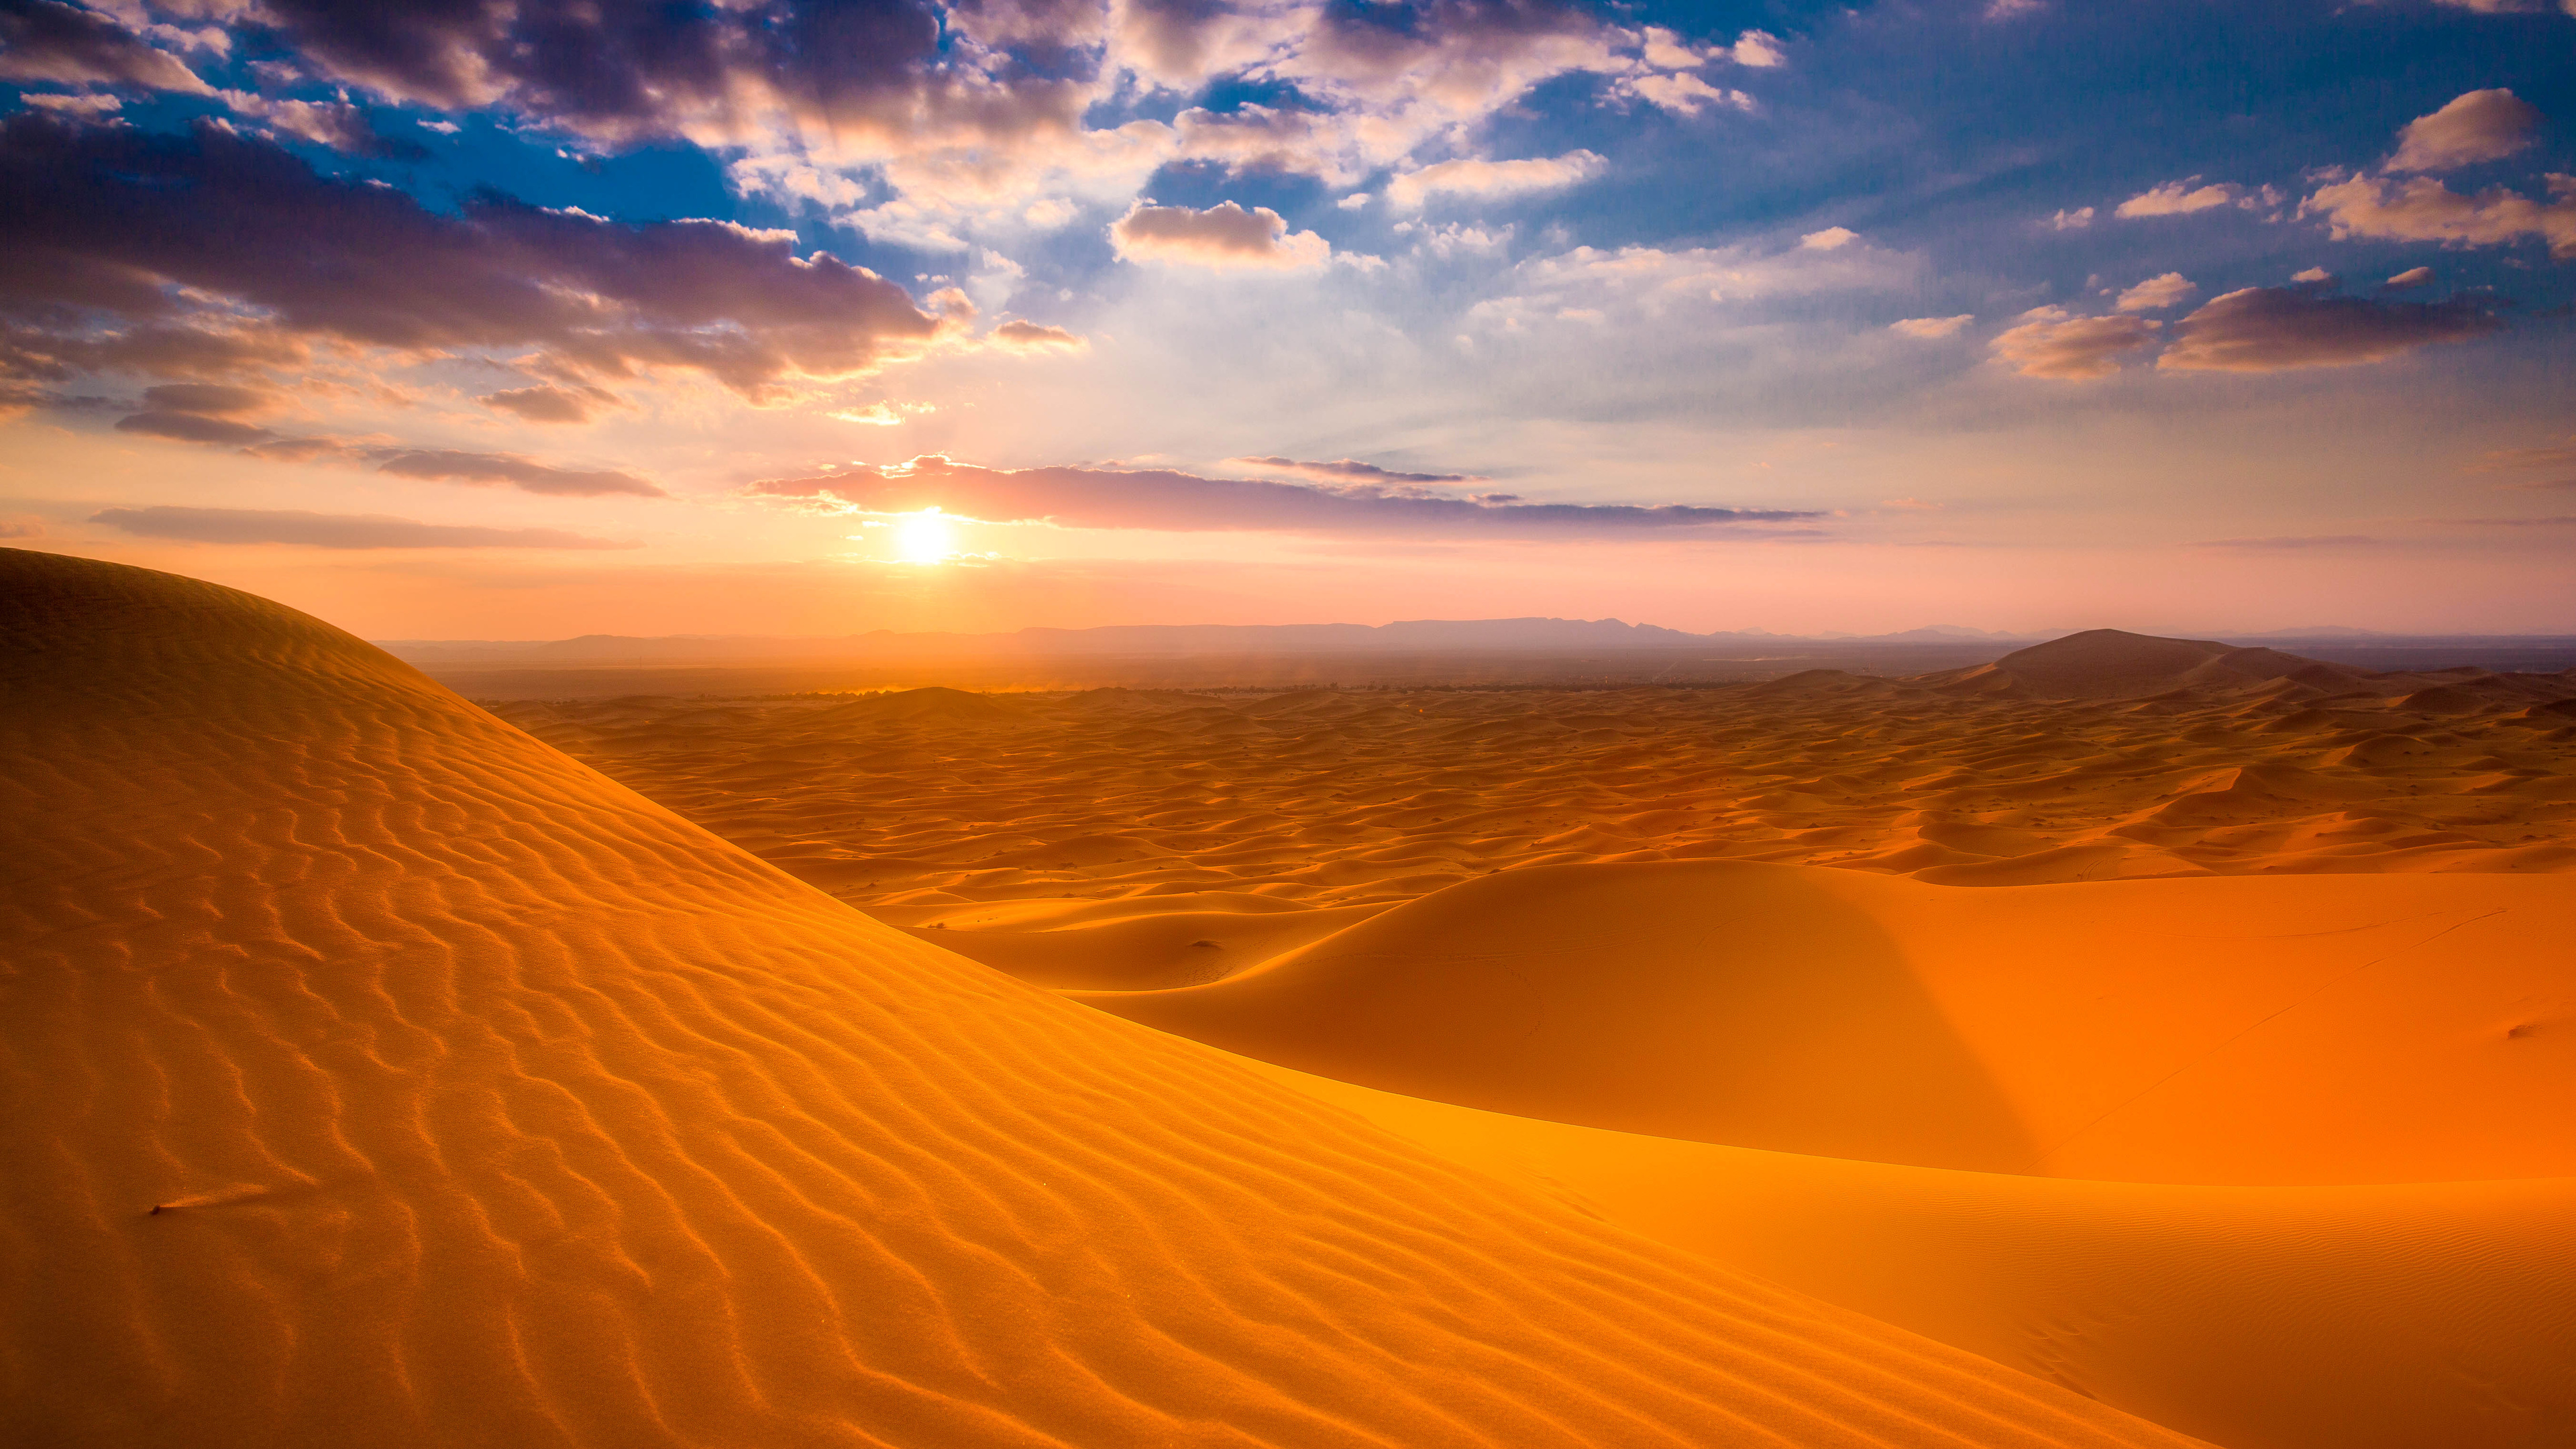 Wallpaper Cars Sahara Desert Sunset Wallpapers